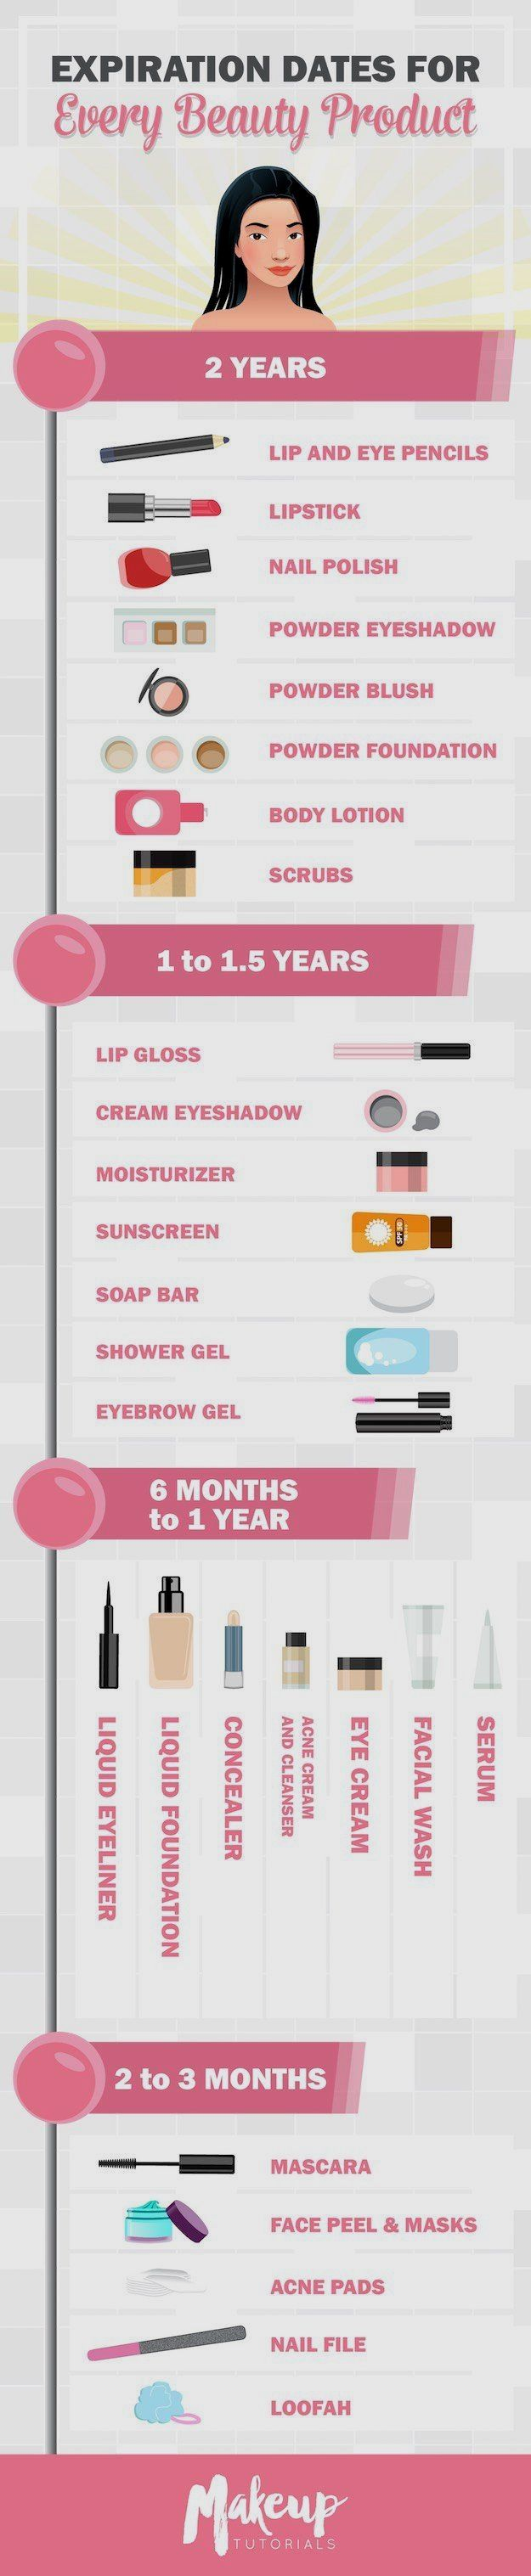 Pin by gdikanskaya on Beauty in 2020 Diy beauty makeup